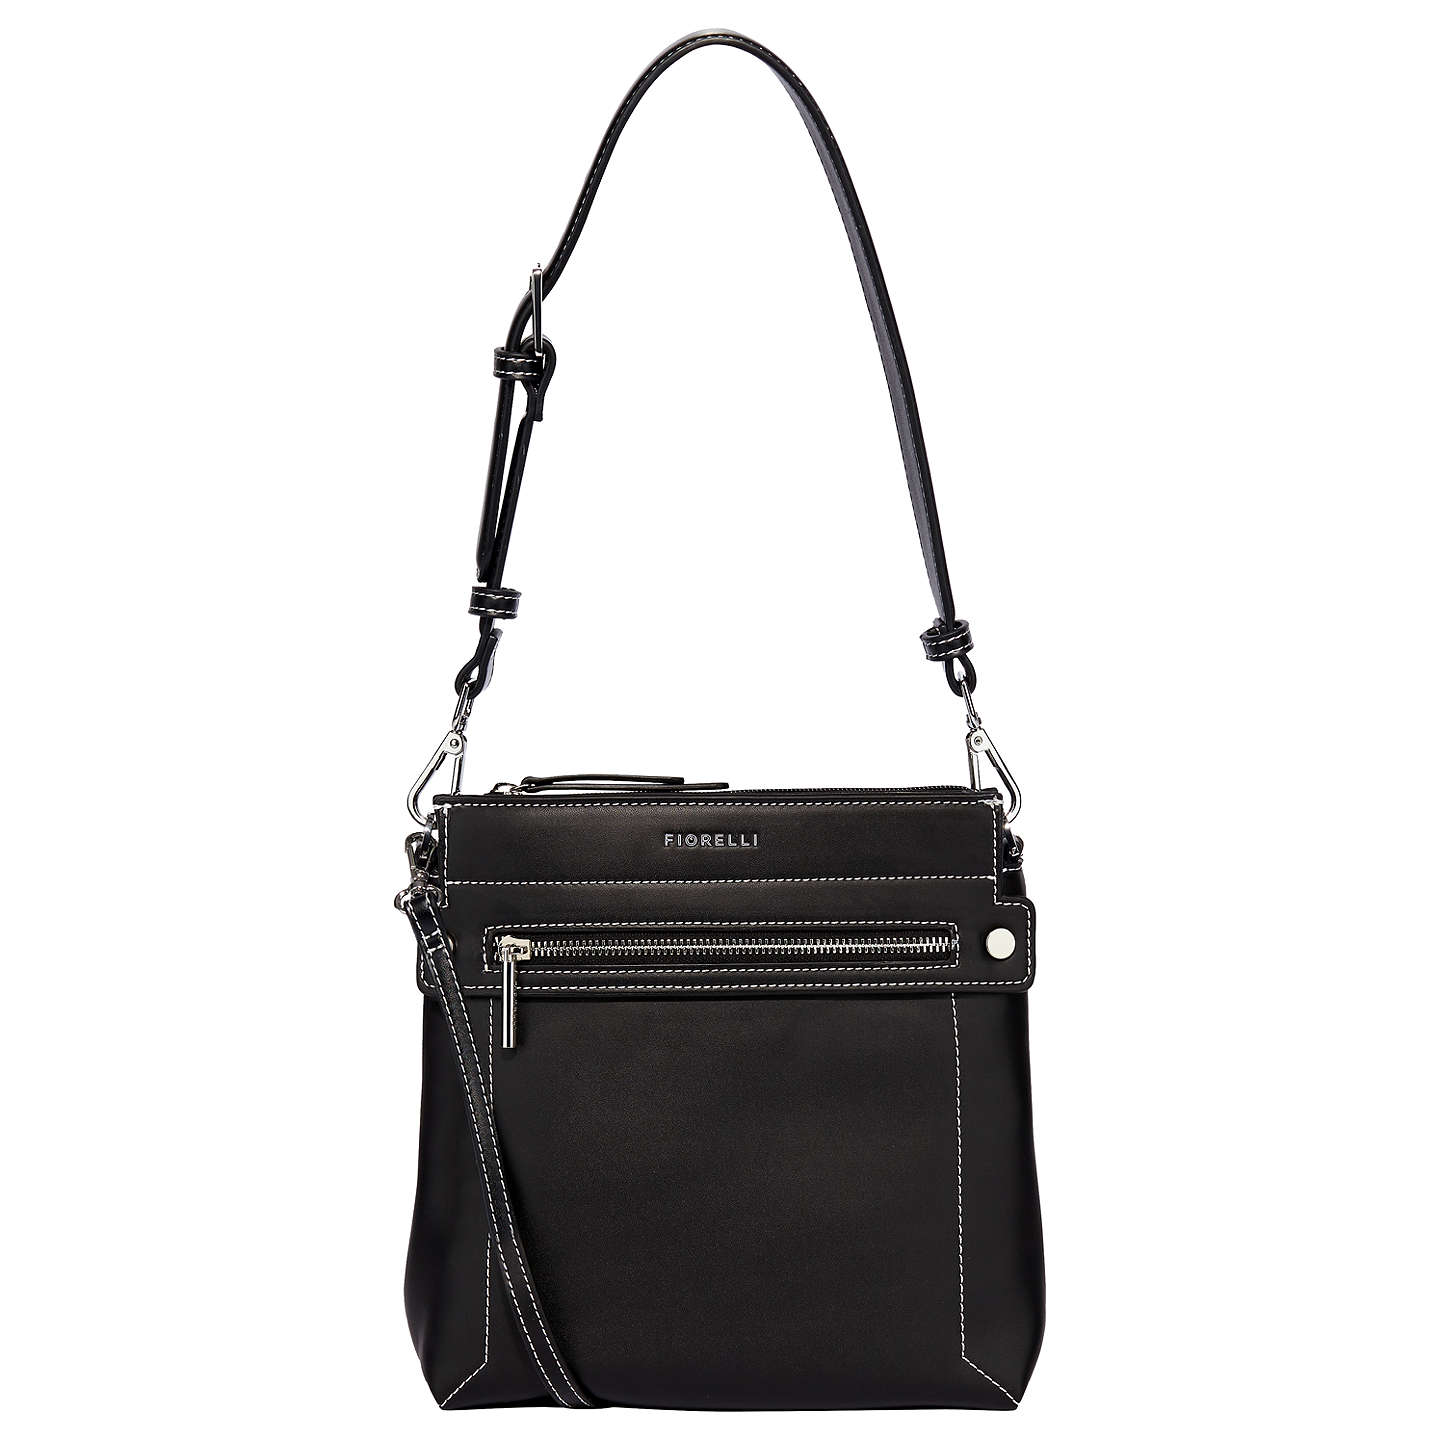 Fiorelli Abbey Cross Body Bag Cheap Price In China Collections Sale Online Outlet Cheapest Price Cheap Sale For Sale Cheap Inexpensive 7IC2BSI